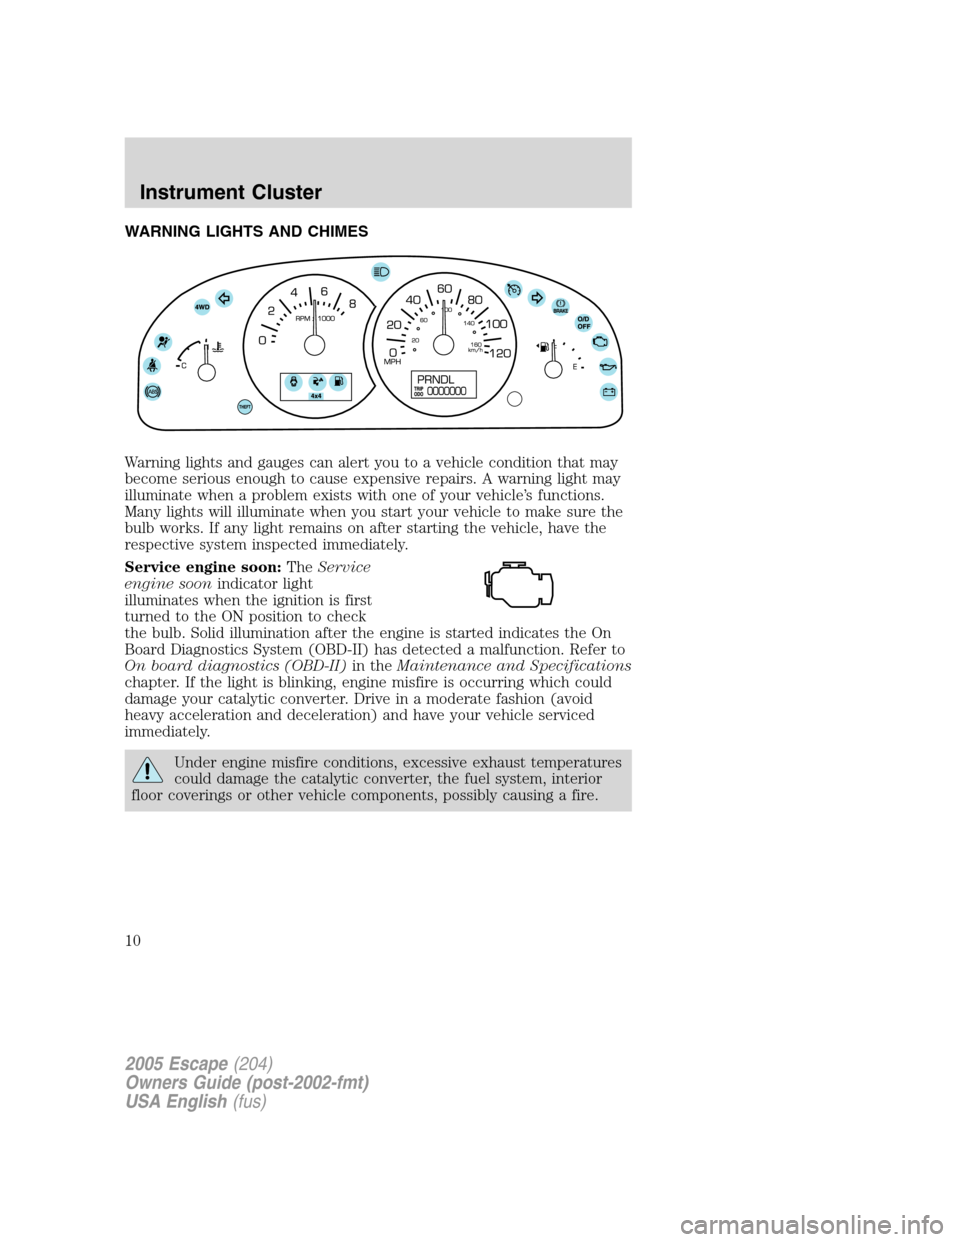 Ford escape 2005 1 g owners manual page 10 warning lights and chimes